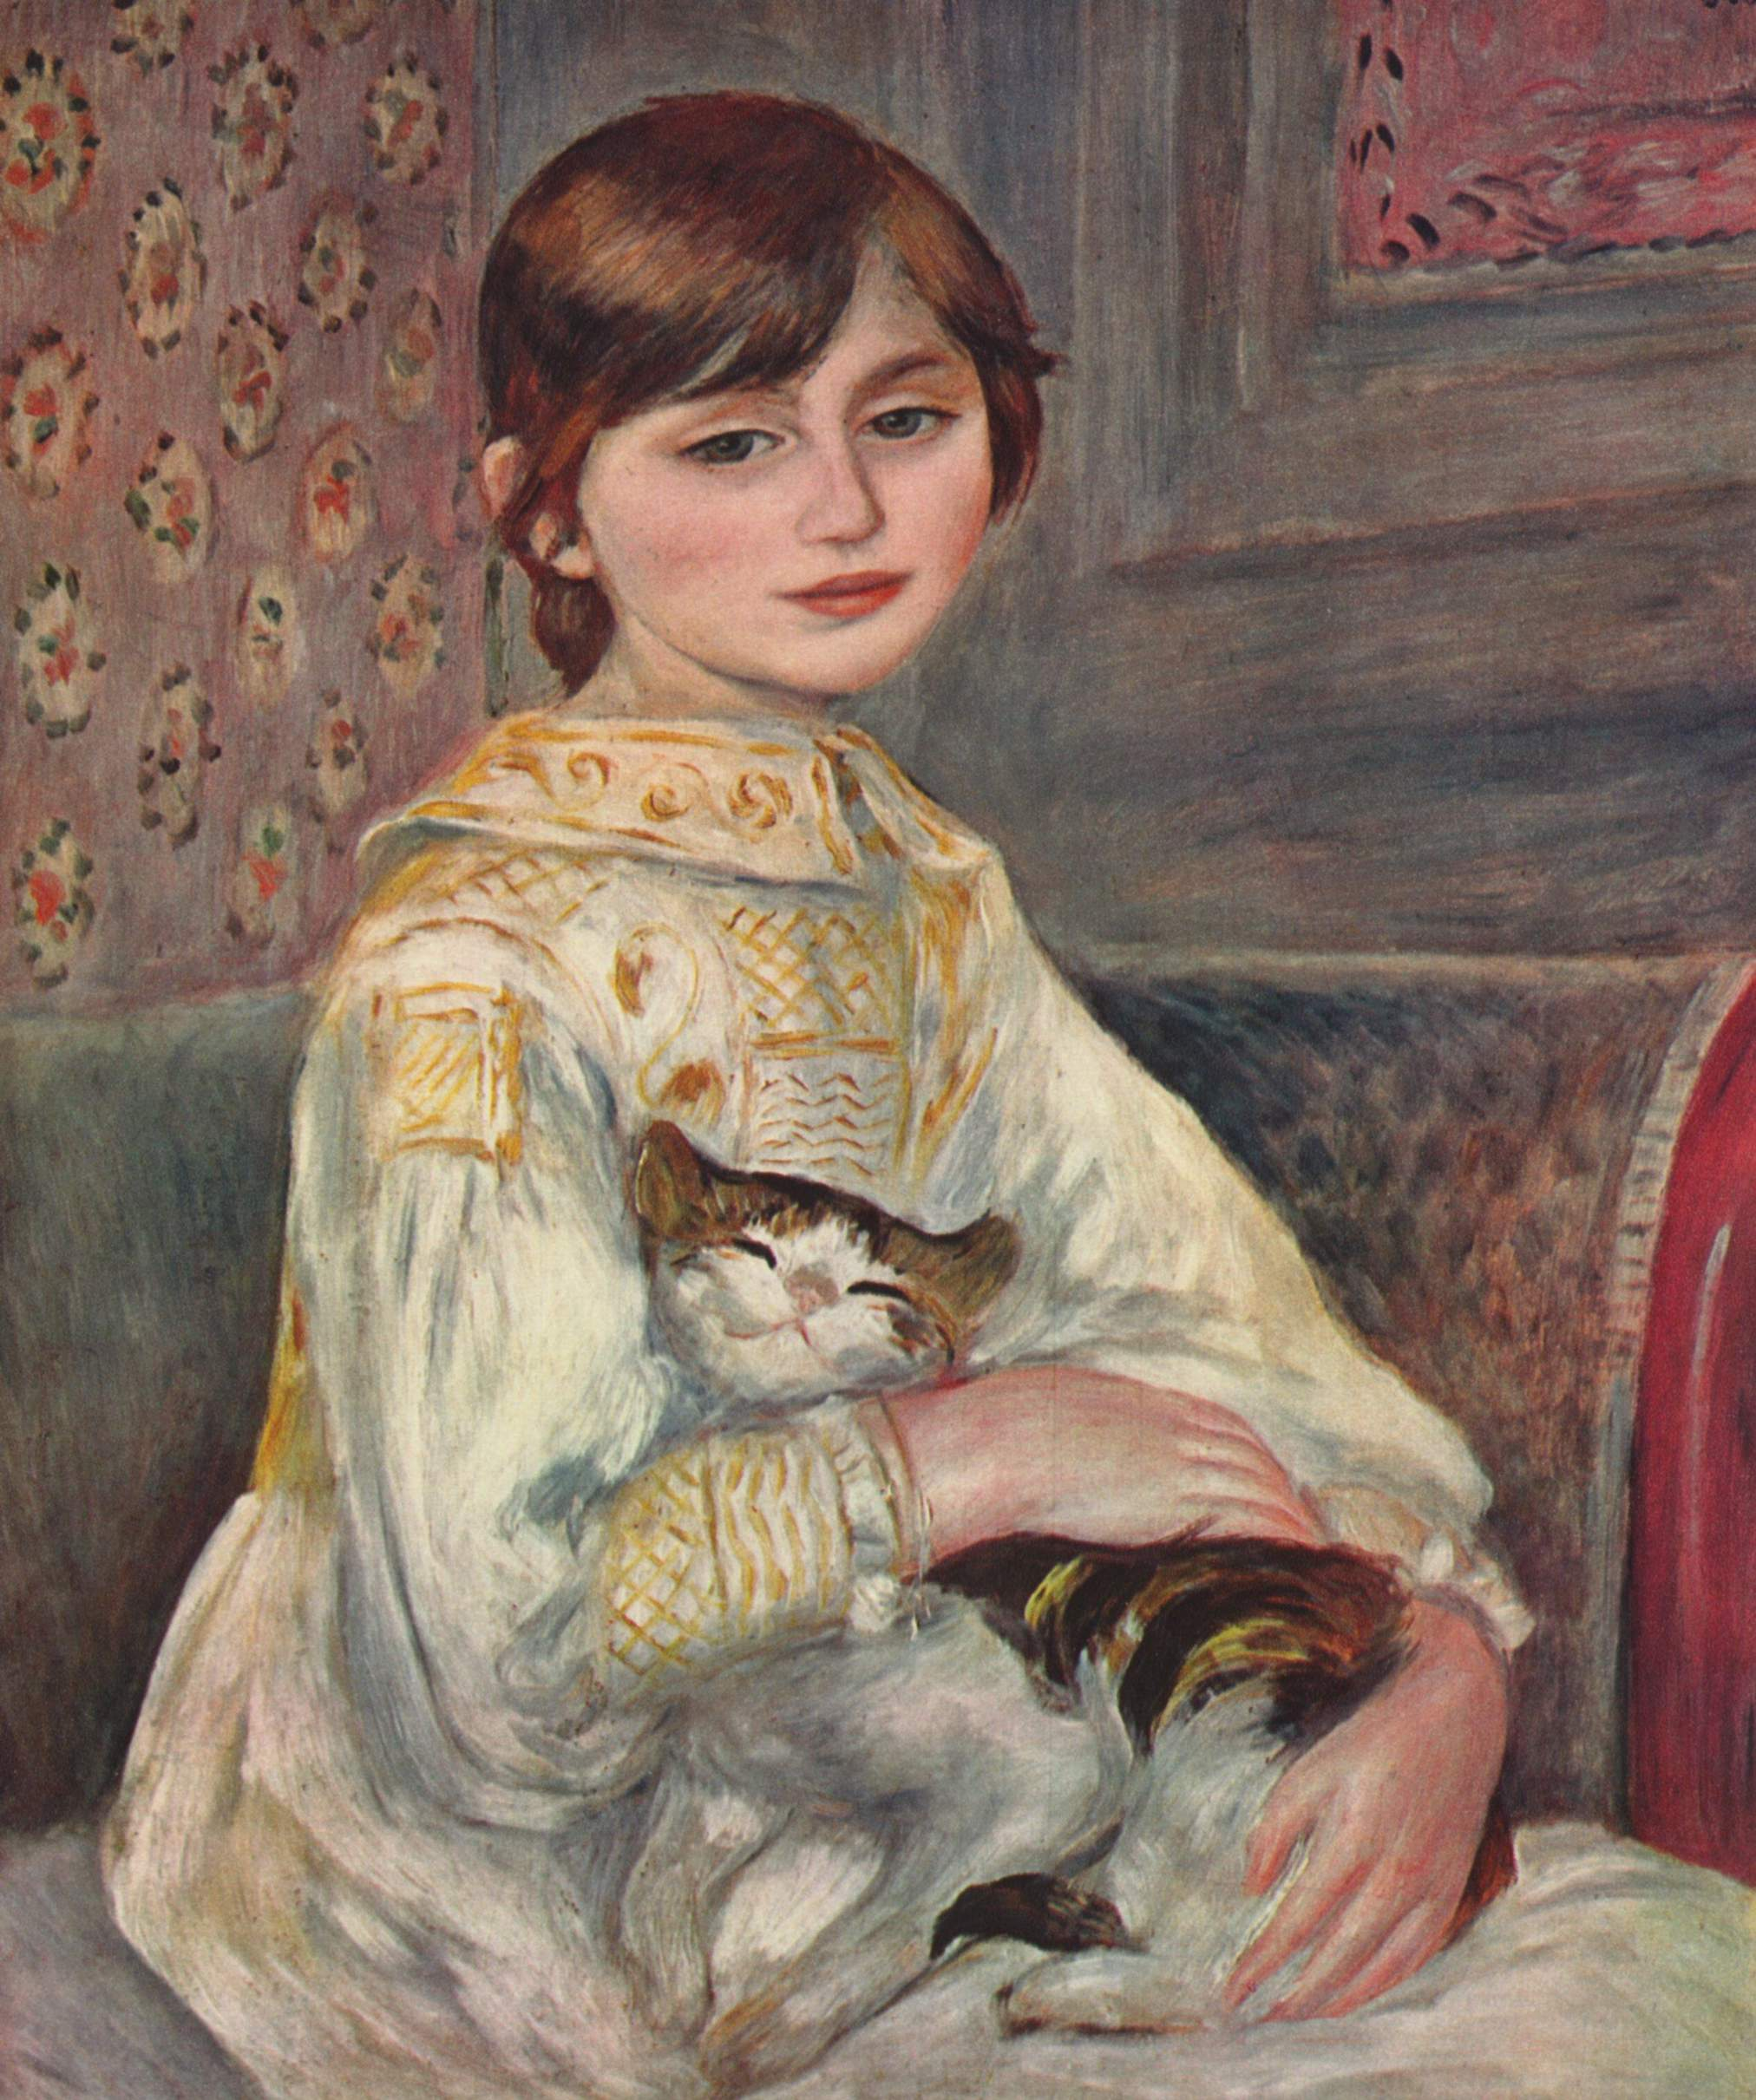 Mademoiselle Julie Manet with a Cat, by Pierre-Auguste Renoir, 1887